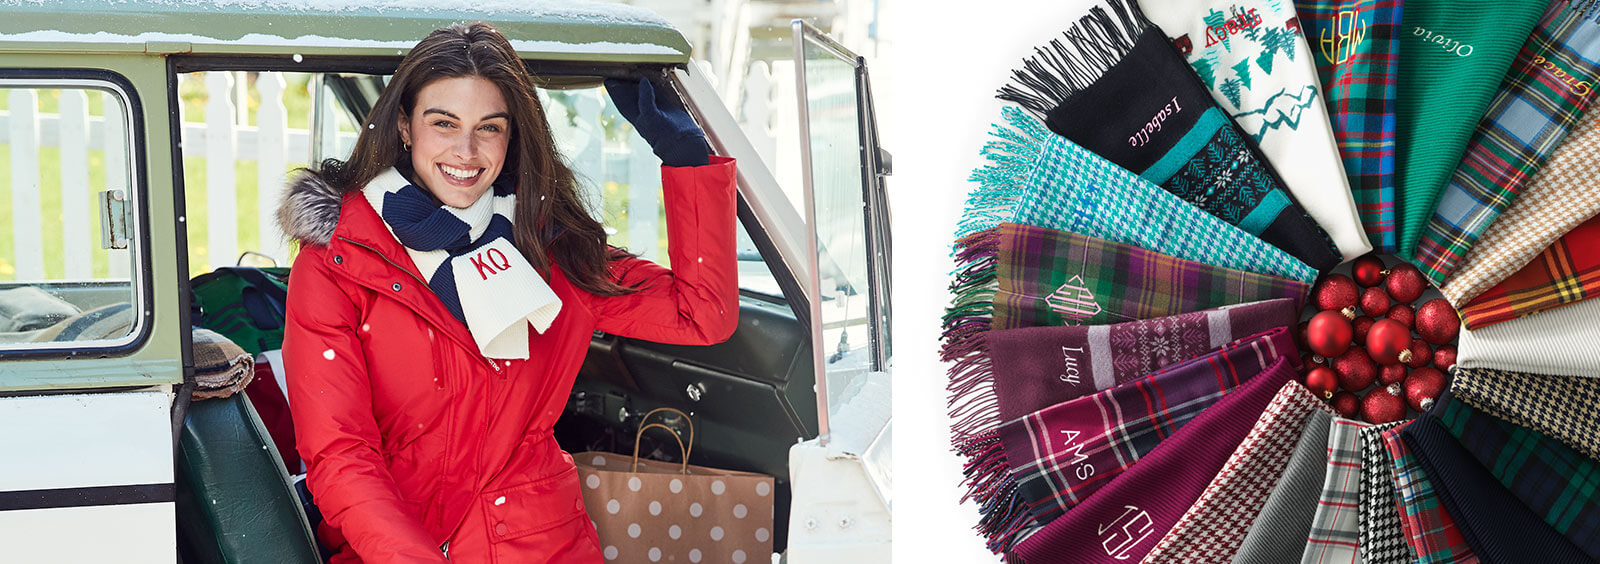 Why You Should Monogram Your Holiday Fashion Pieces